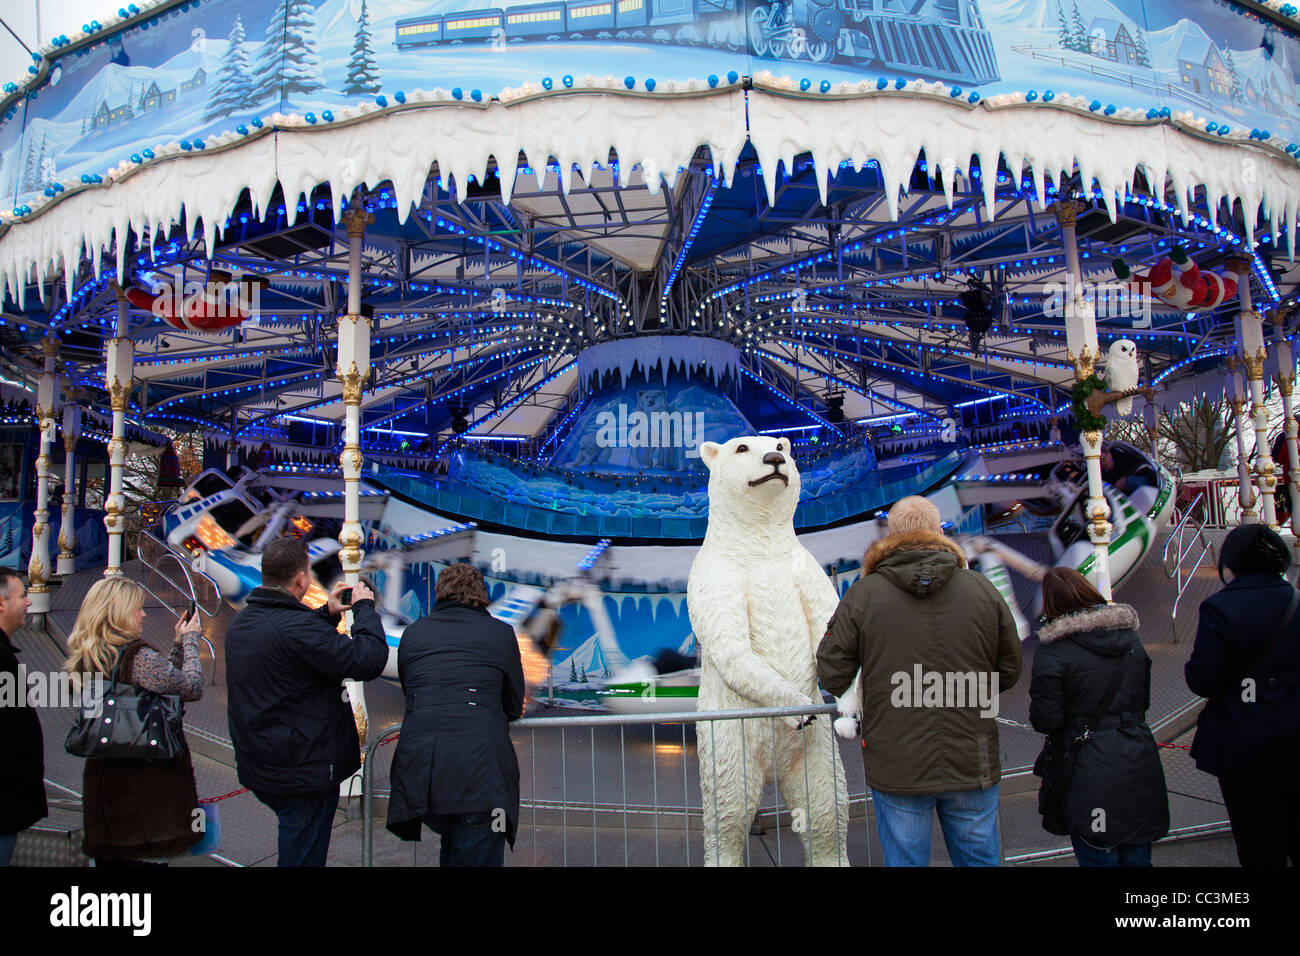 fairground rides in winter stock photos u0026 fairground rides in